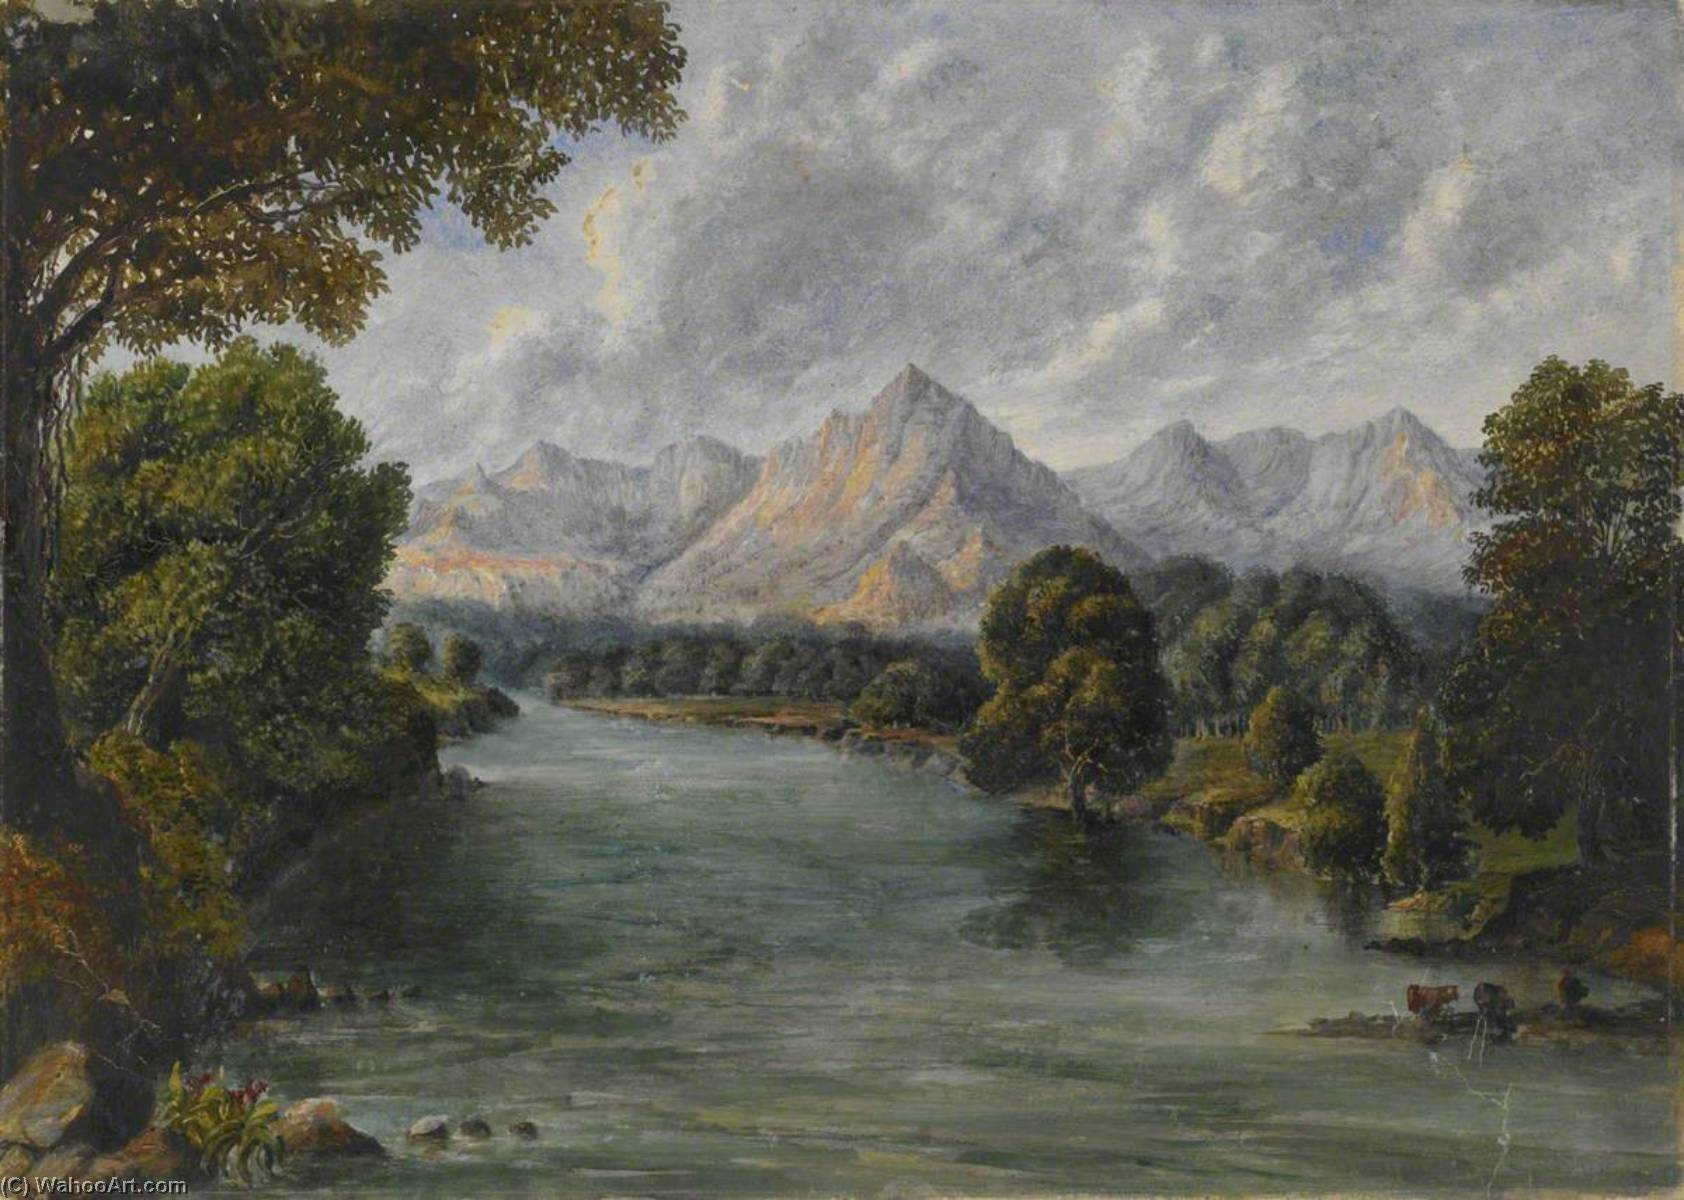 River with Mountains in the Distance, Western Ghats, Oil by William Robert Houghton